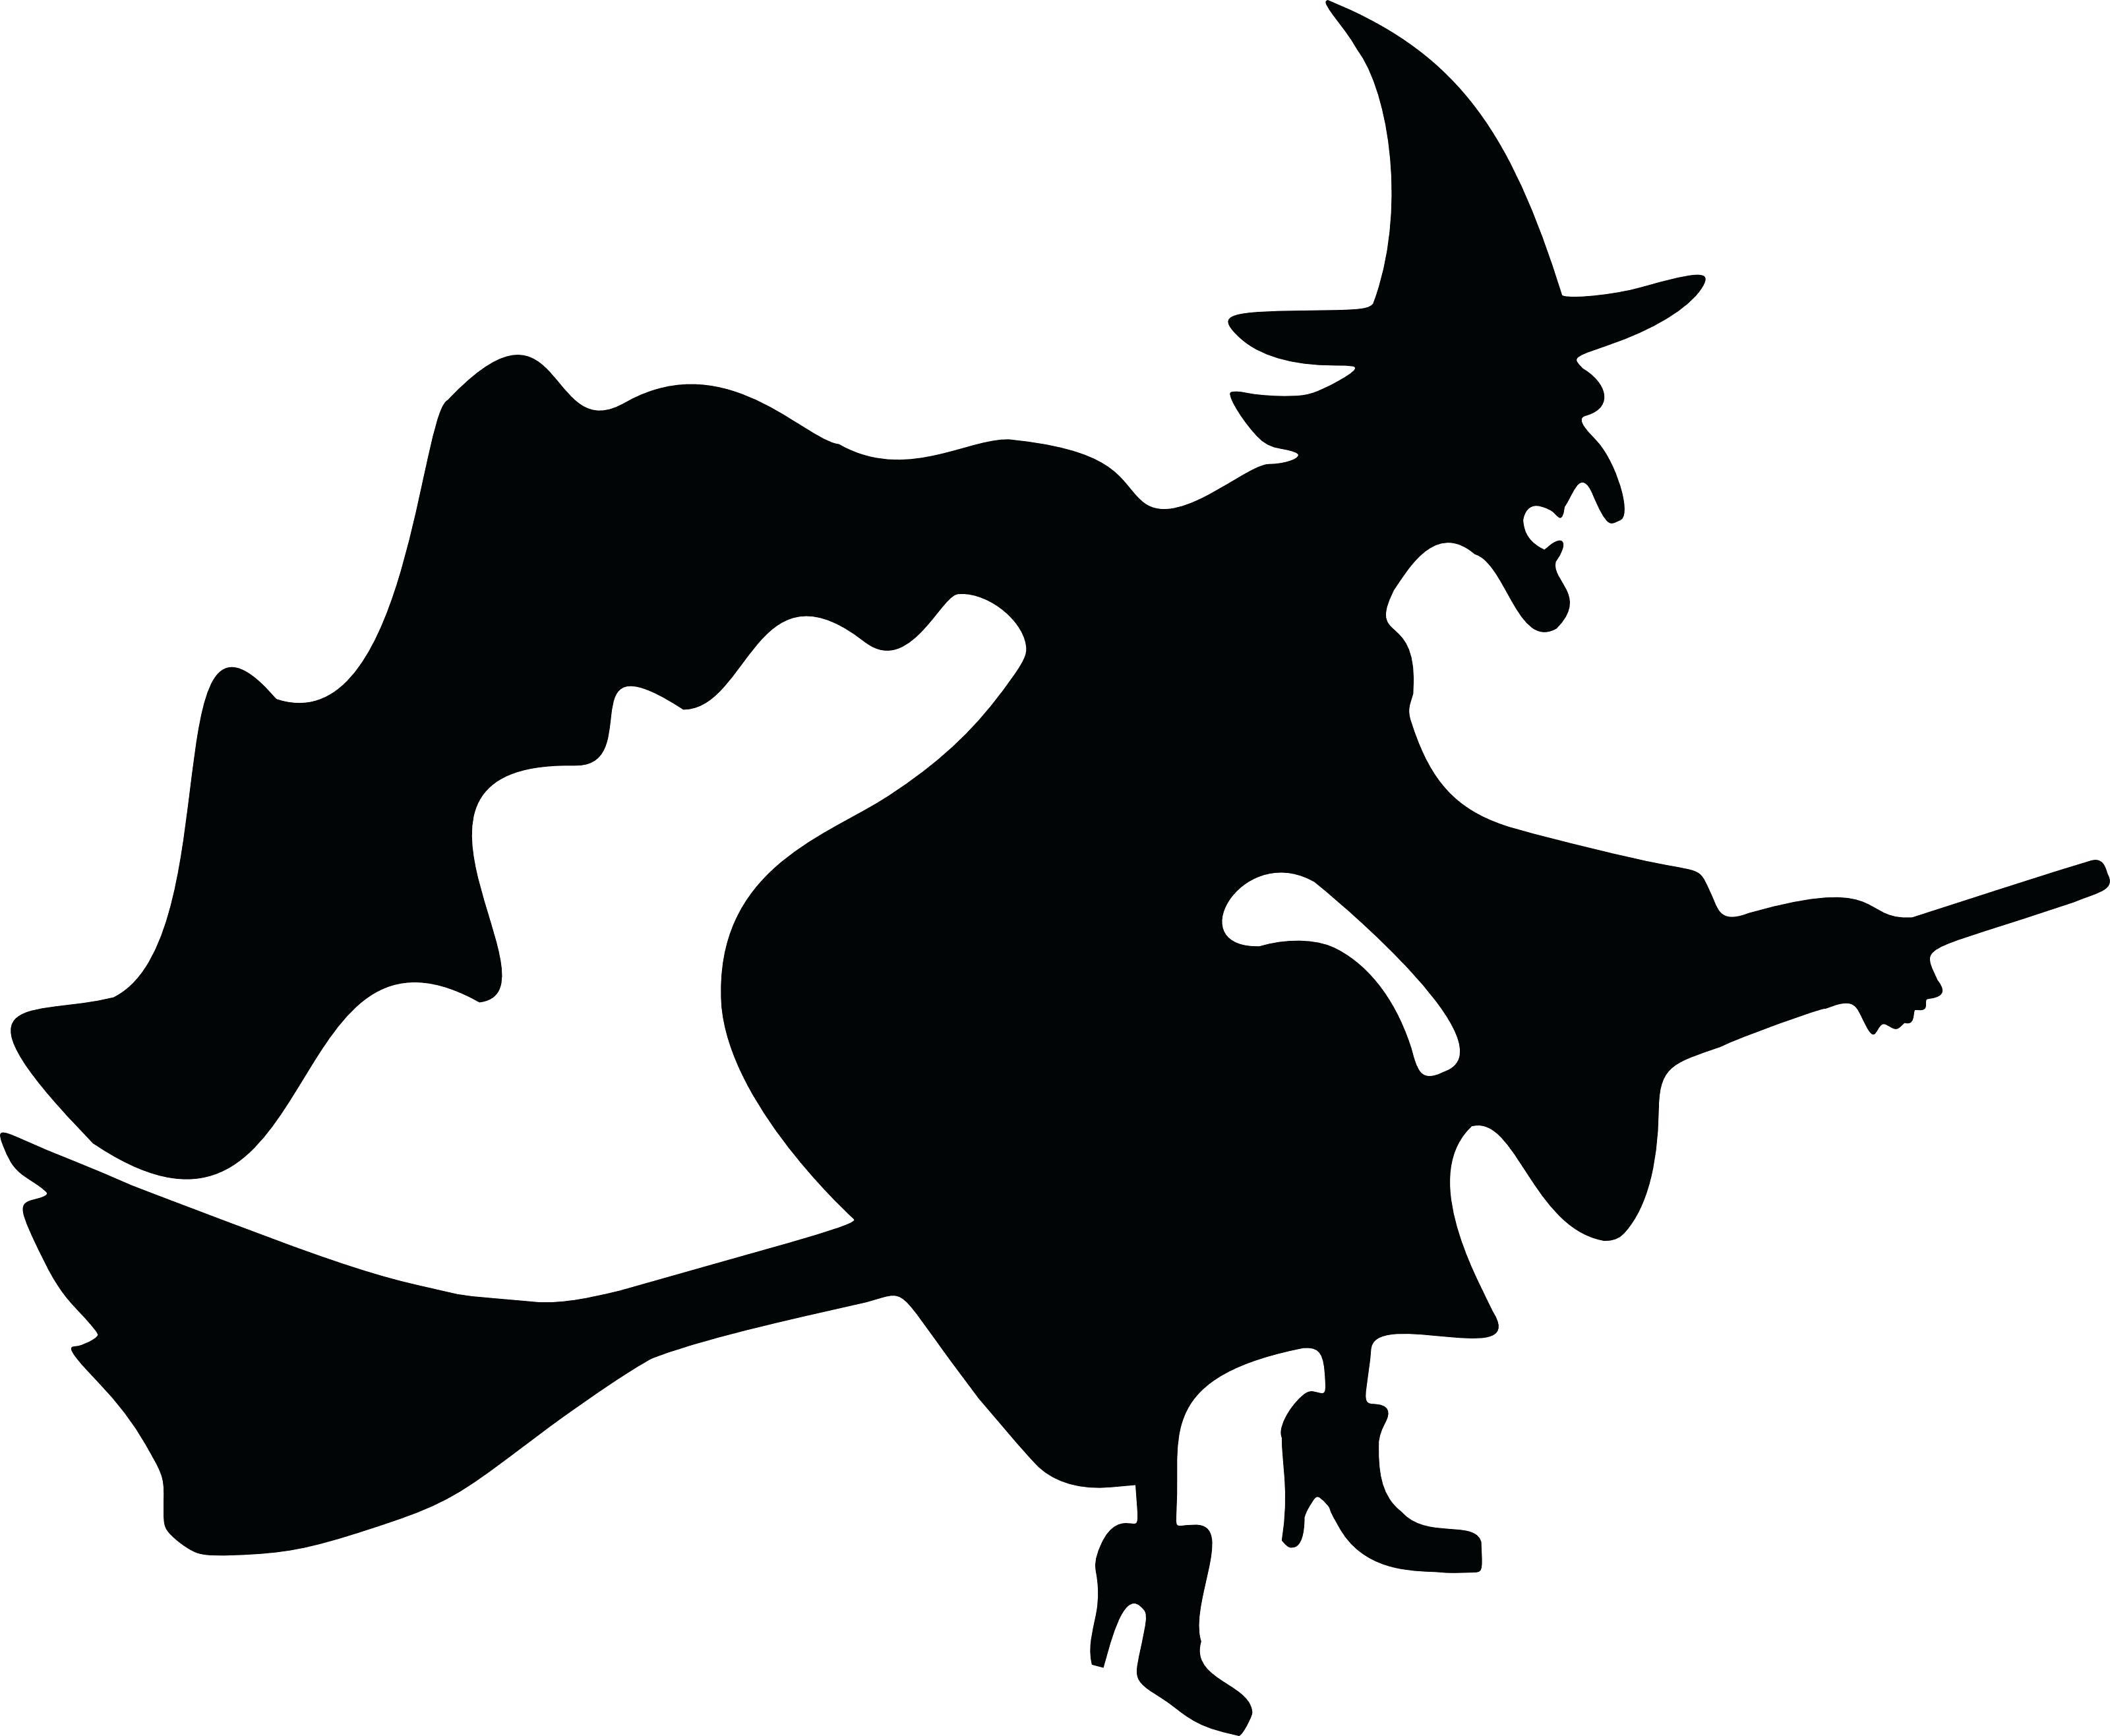 Halloween scene silhouettes clipart png library download Best Halloween Witch Silhouette Cdr » Free Vector Art, Images ... png library download